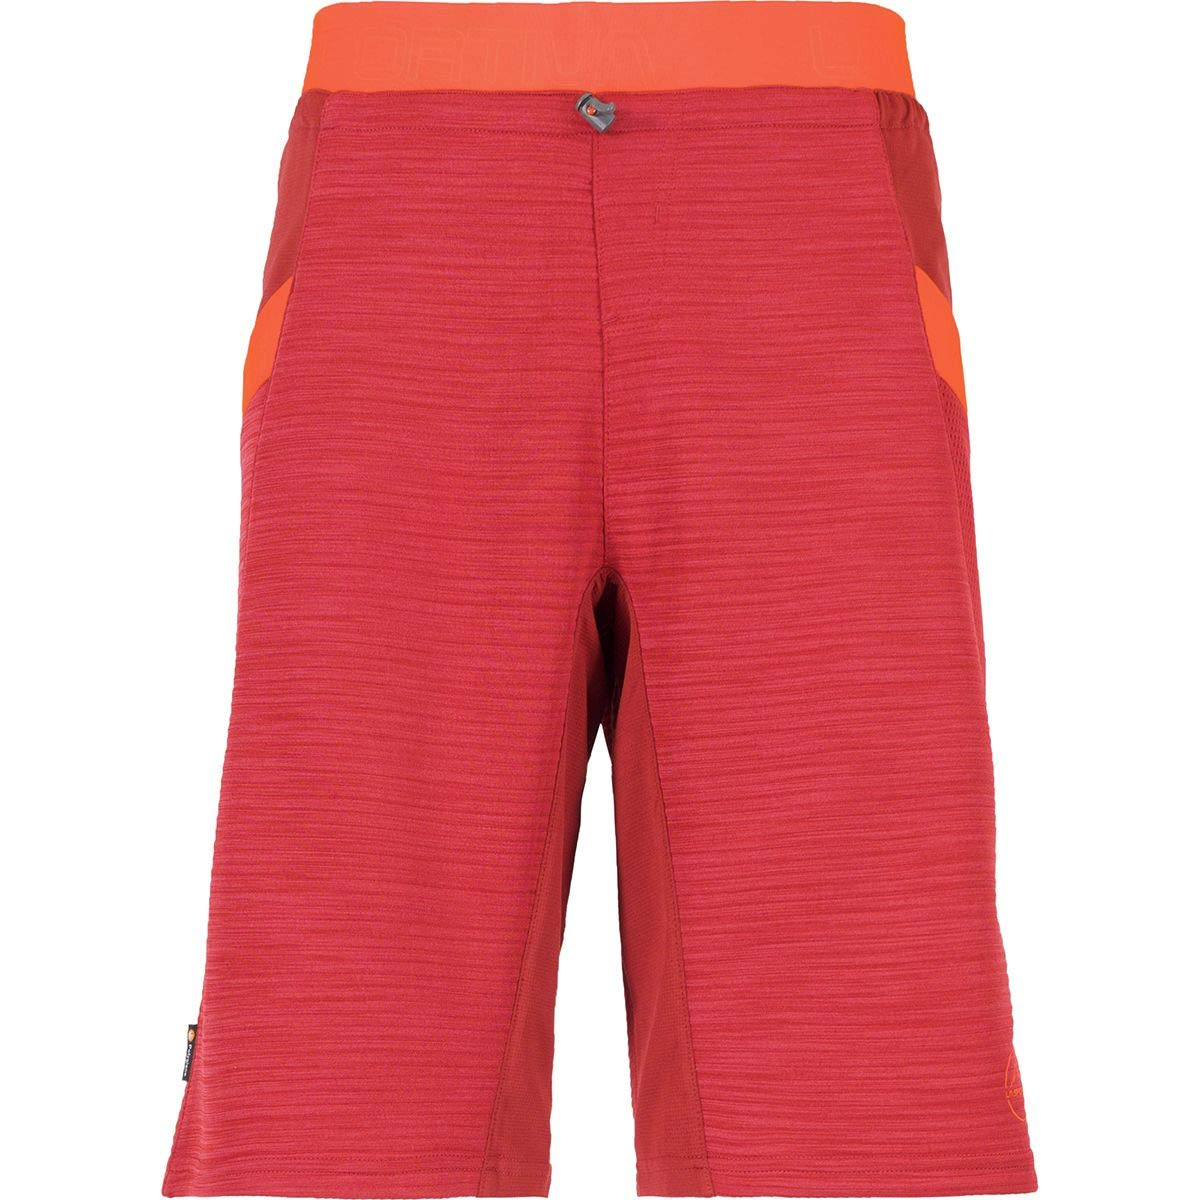 La Sportiva Force Short - Men's Chili/Pumpkin, S by La Sportiva